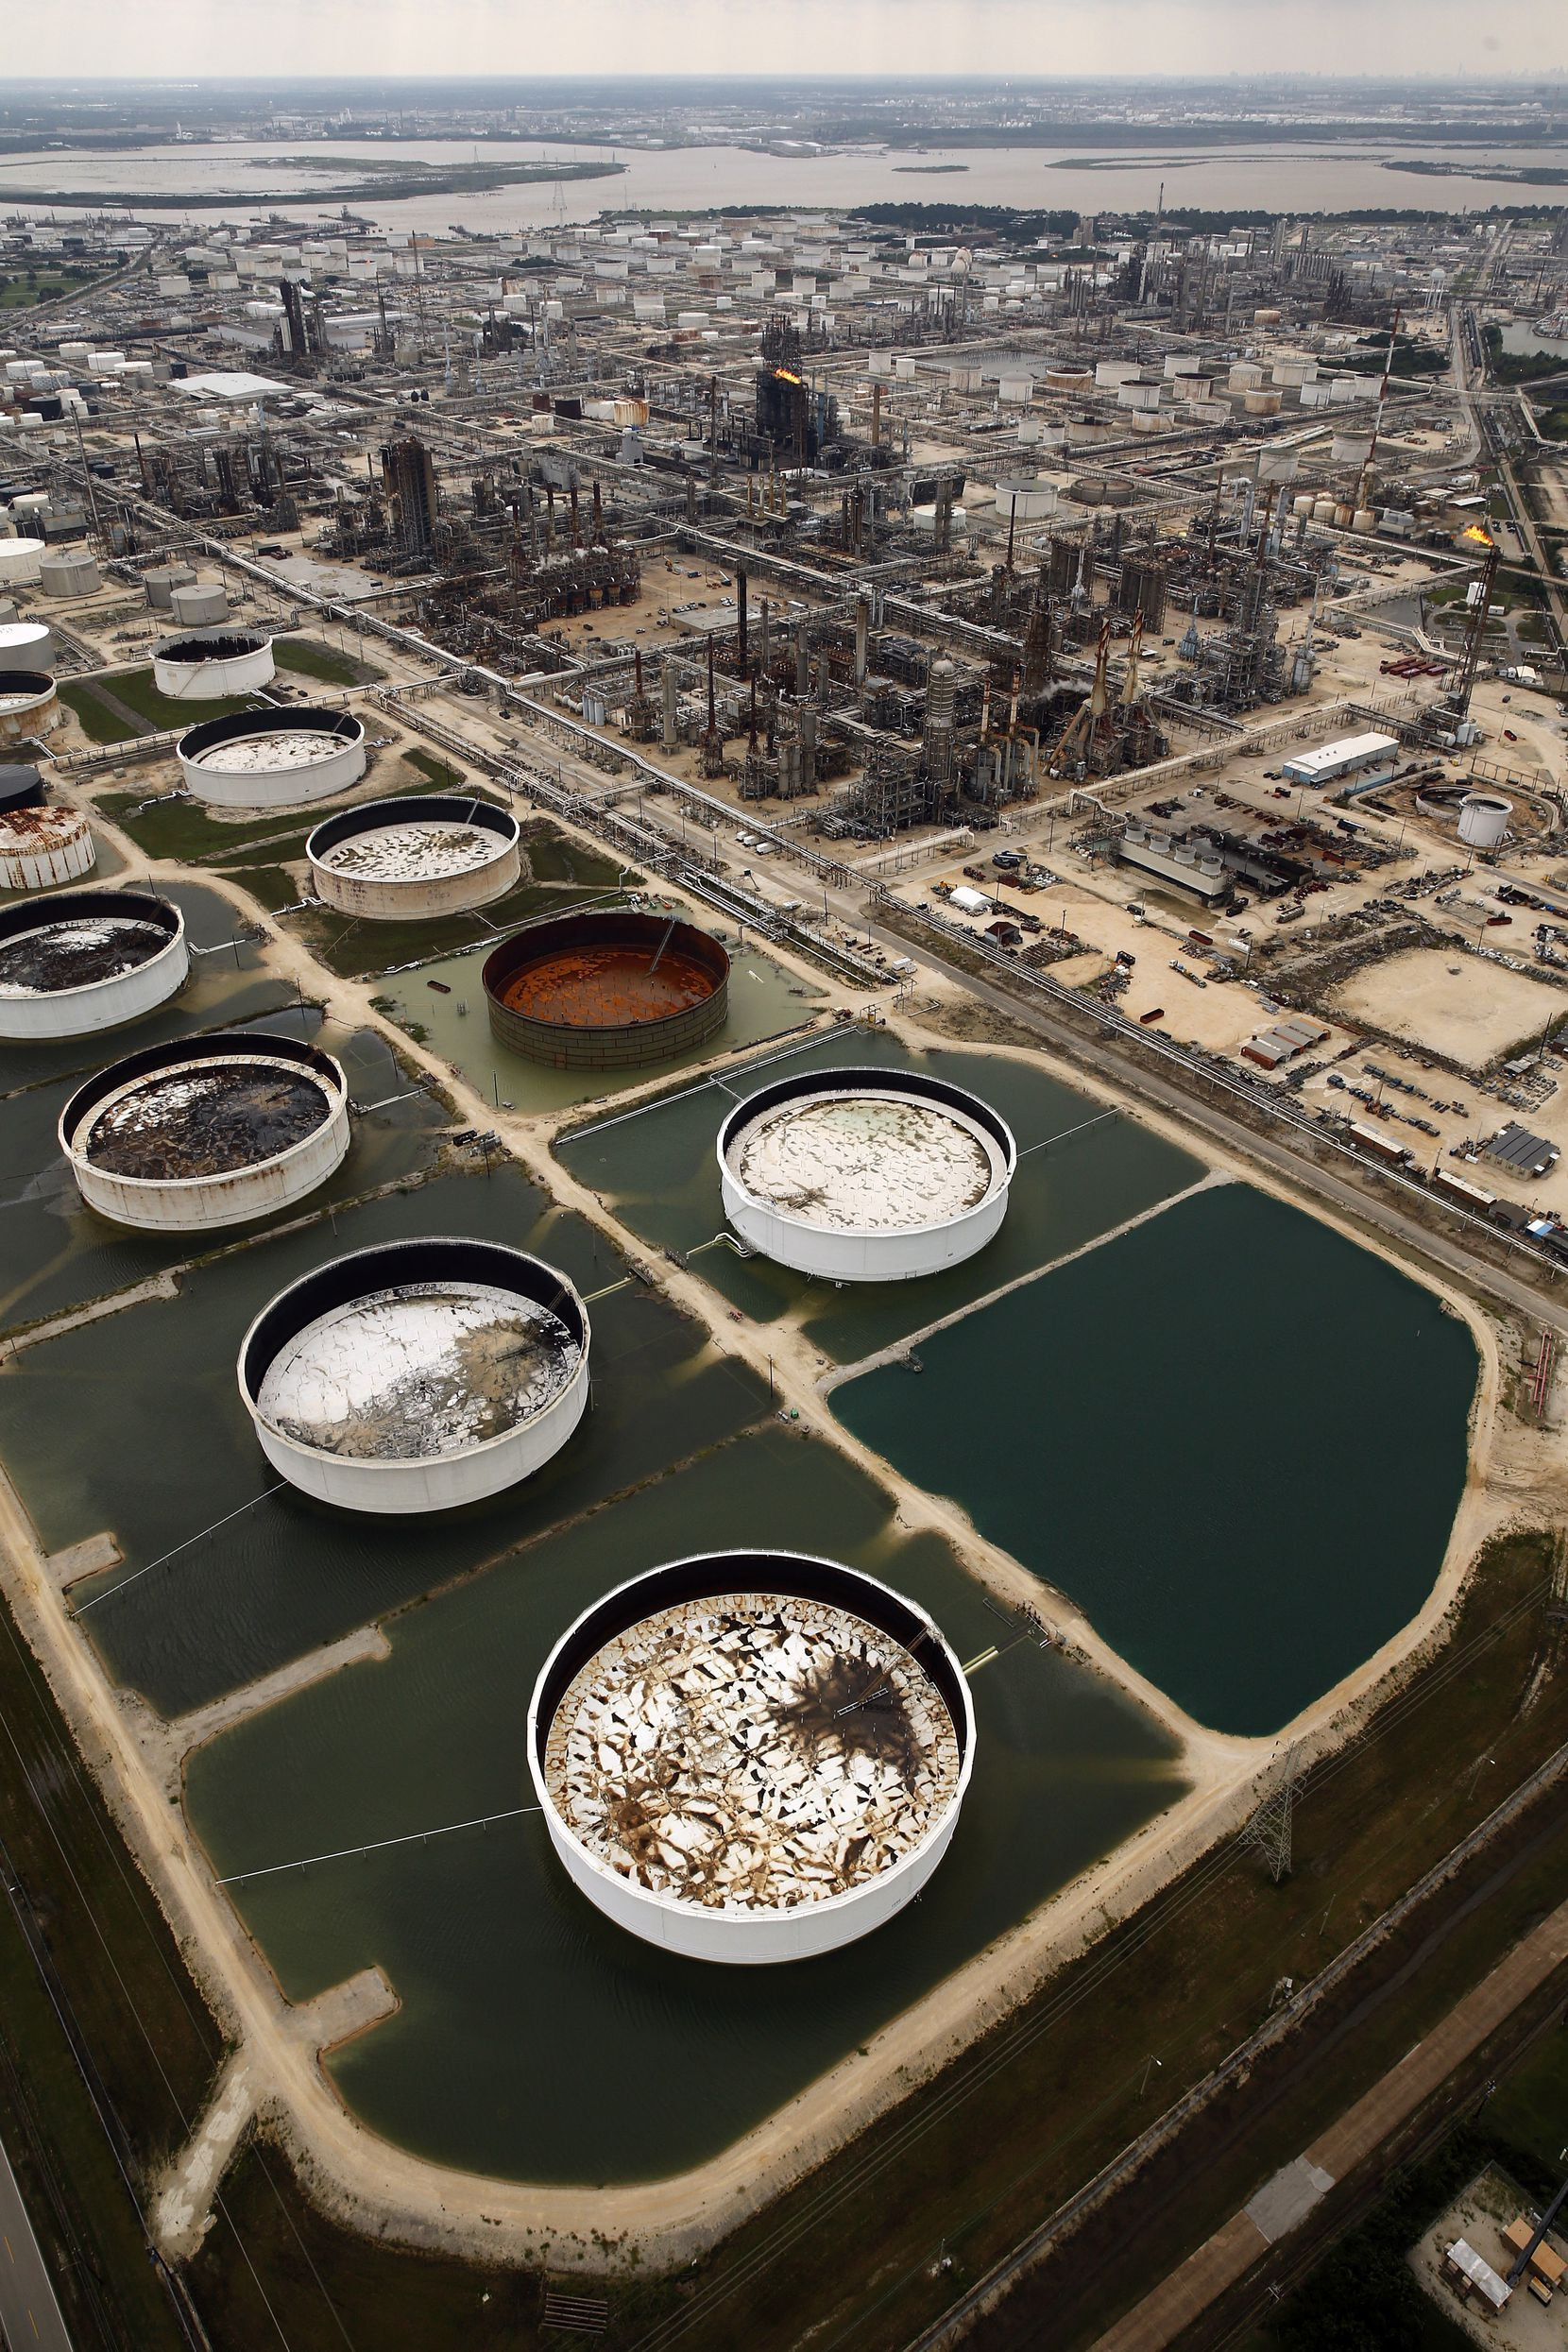 Large storage tanks situated in retention ponds are surrounded by rainwater left behind by Hurricane Harvey at ExxonMobil's refinery in Baytown, Texas, Wednesday, August 30, 2017.